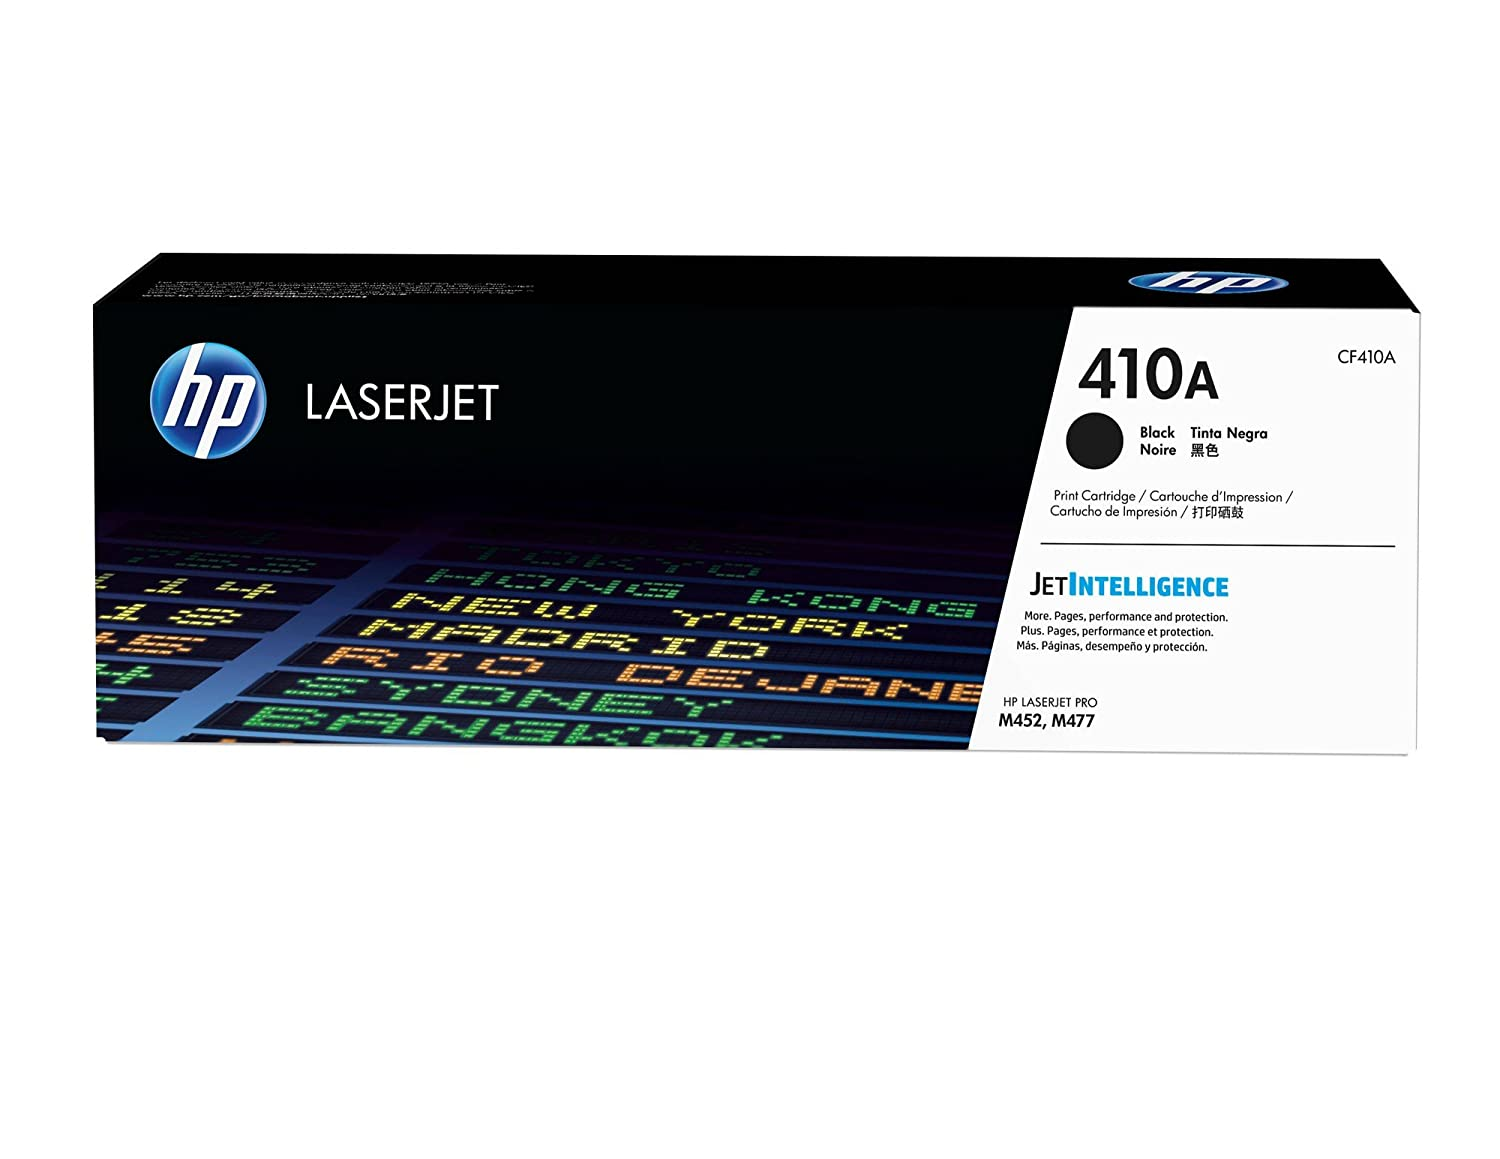 HP 410A (CF410A) Toner Cartridge, Black for HP Color LaserJet Pro M452dn, M452dw, M452nw, MFP M377dw, MFP M477fdn, MFP M477fdw, MFP M477fnw